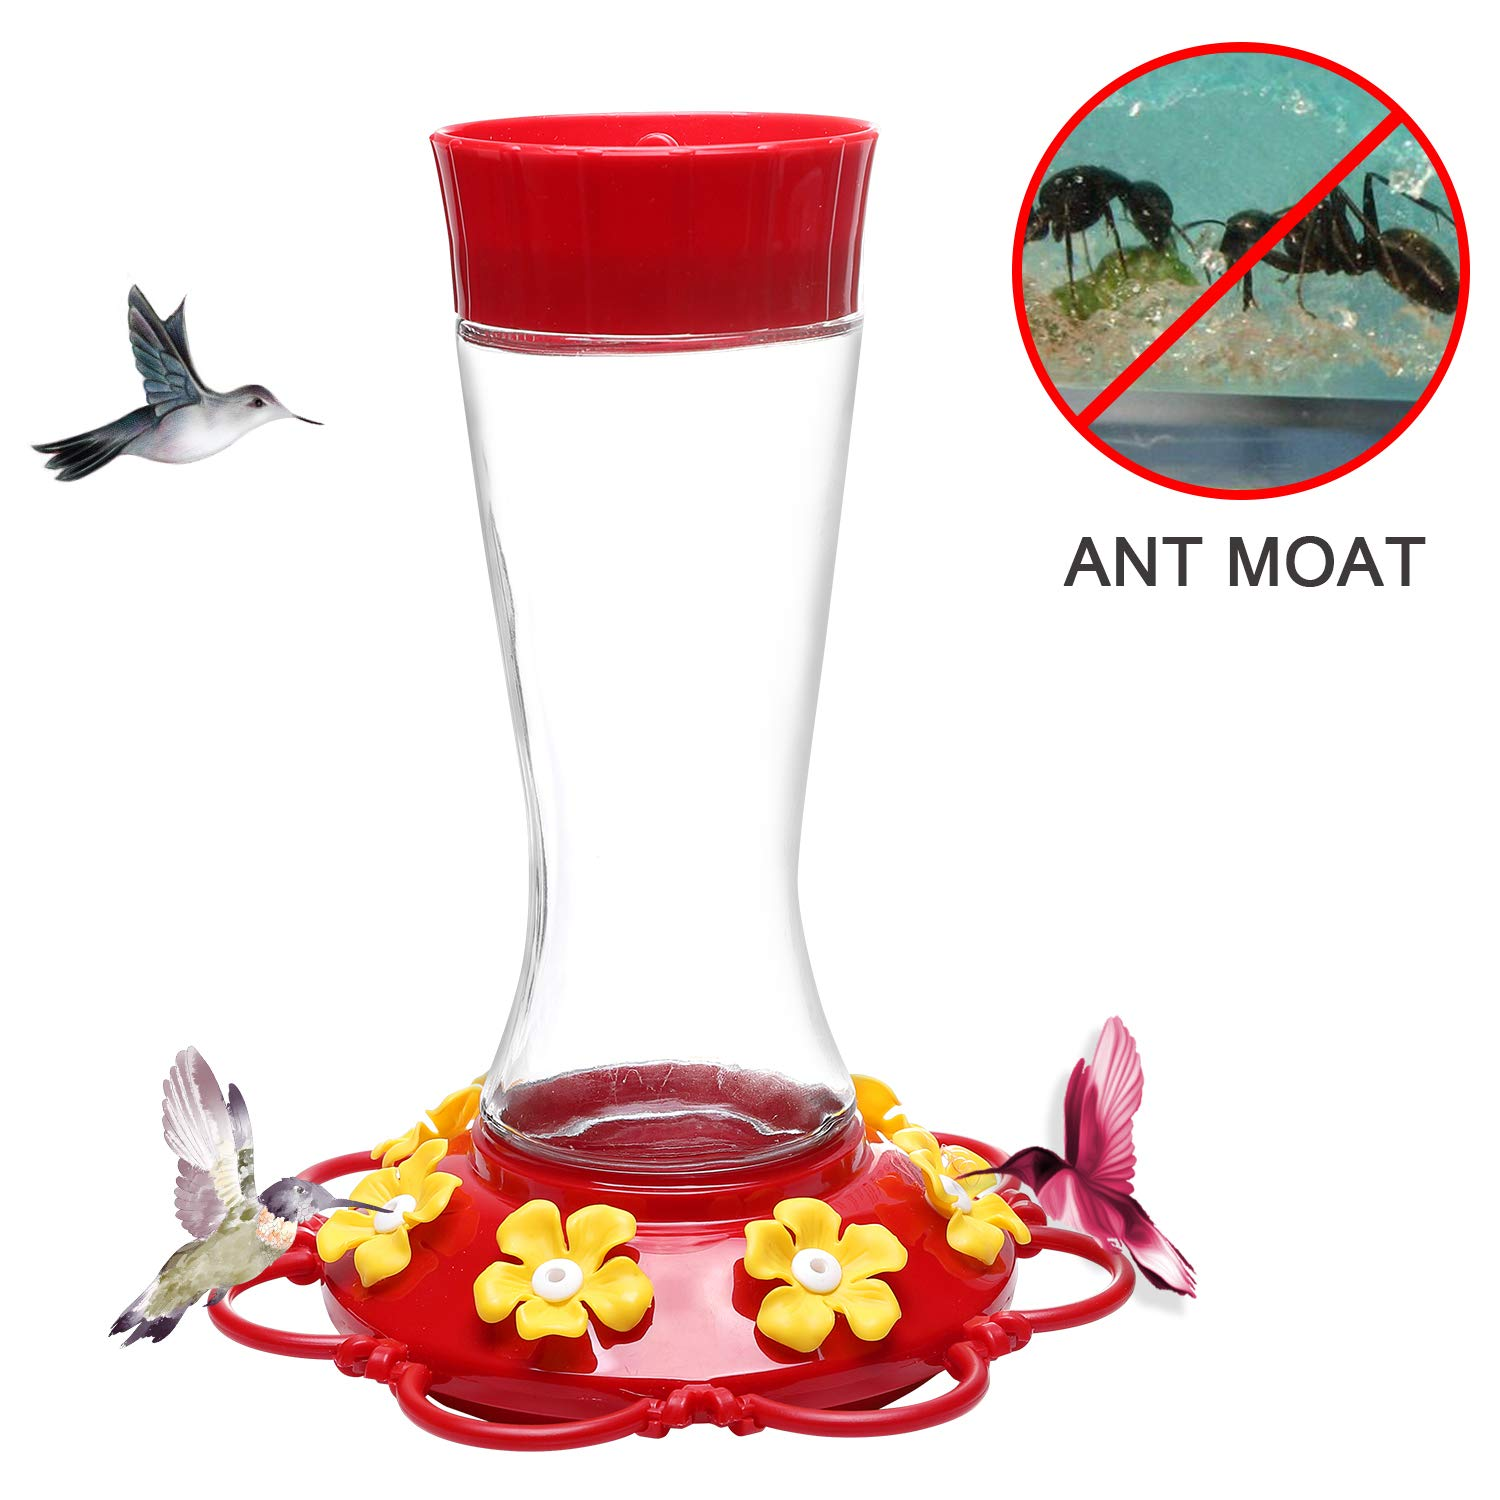 Don Hamilton Hummingbird Feeder,Glass Hummingbird Feeders with Ant Moat for Outdoors,20 Ounce,Red